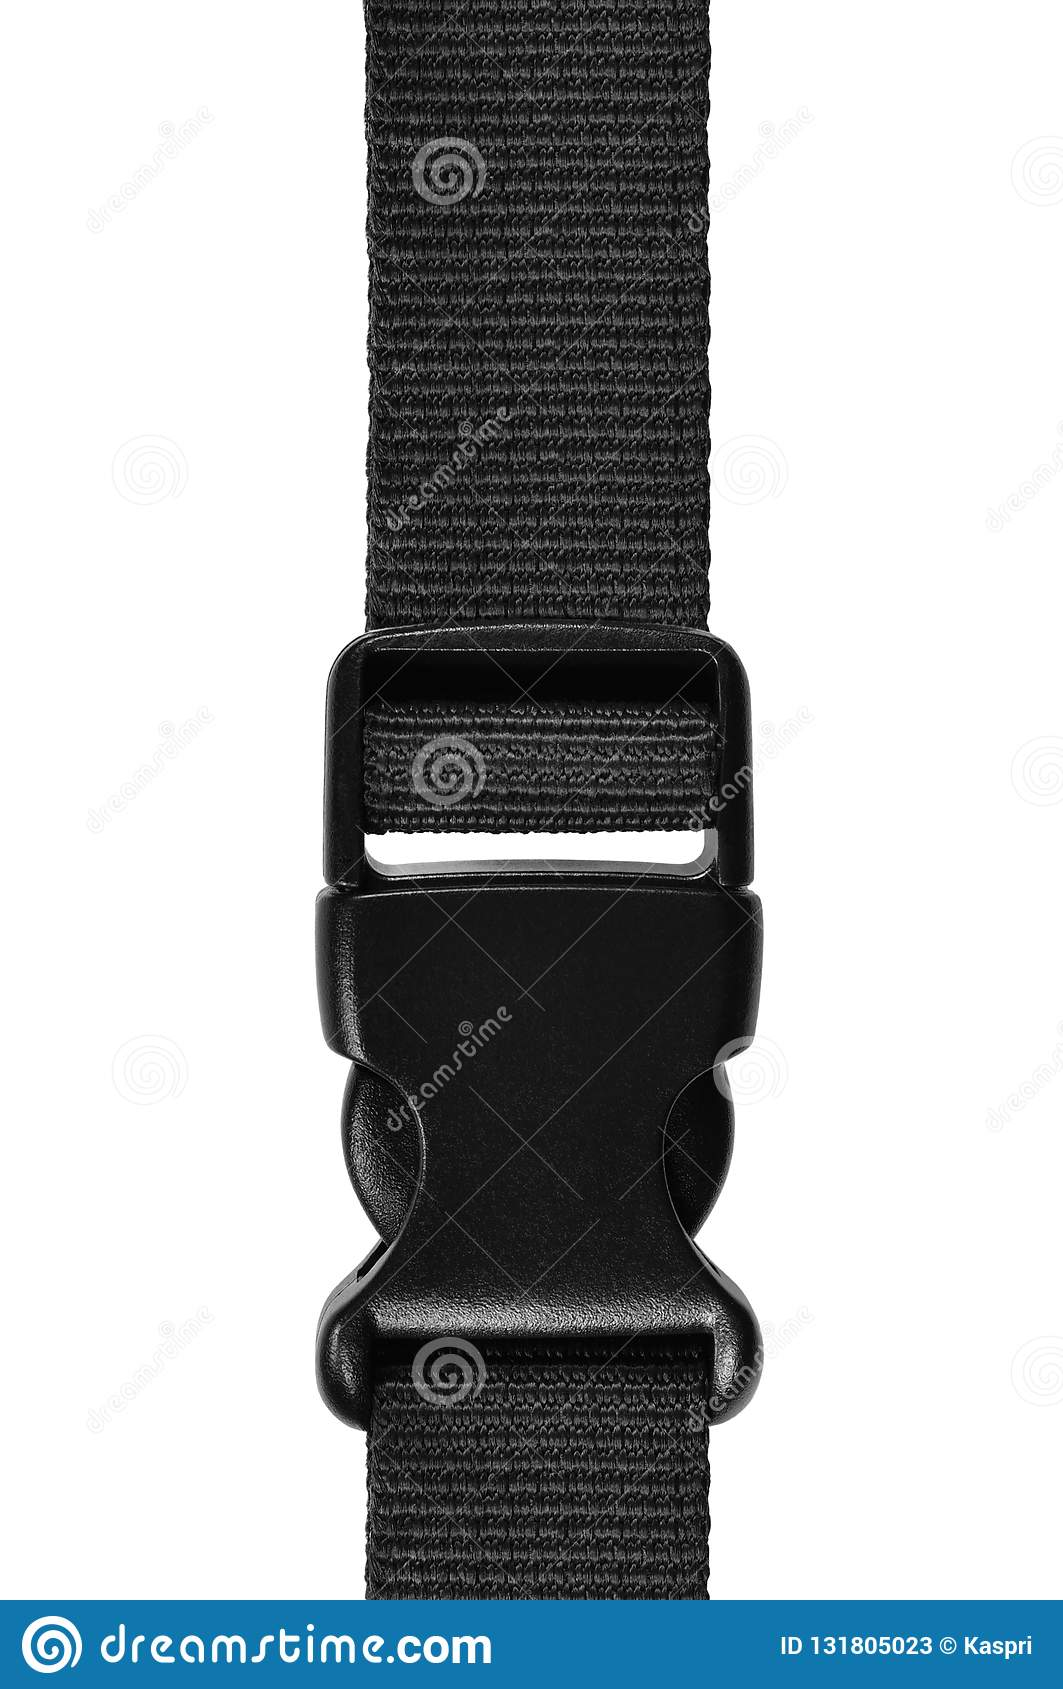 hight resolution of black side release acculoc buckle plastic clasp quick nylon belt rope lock strap isolated